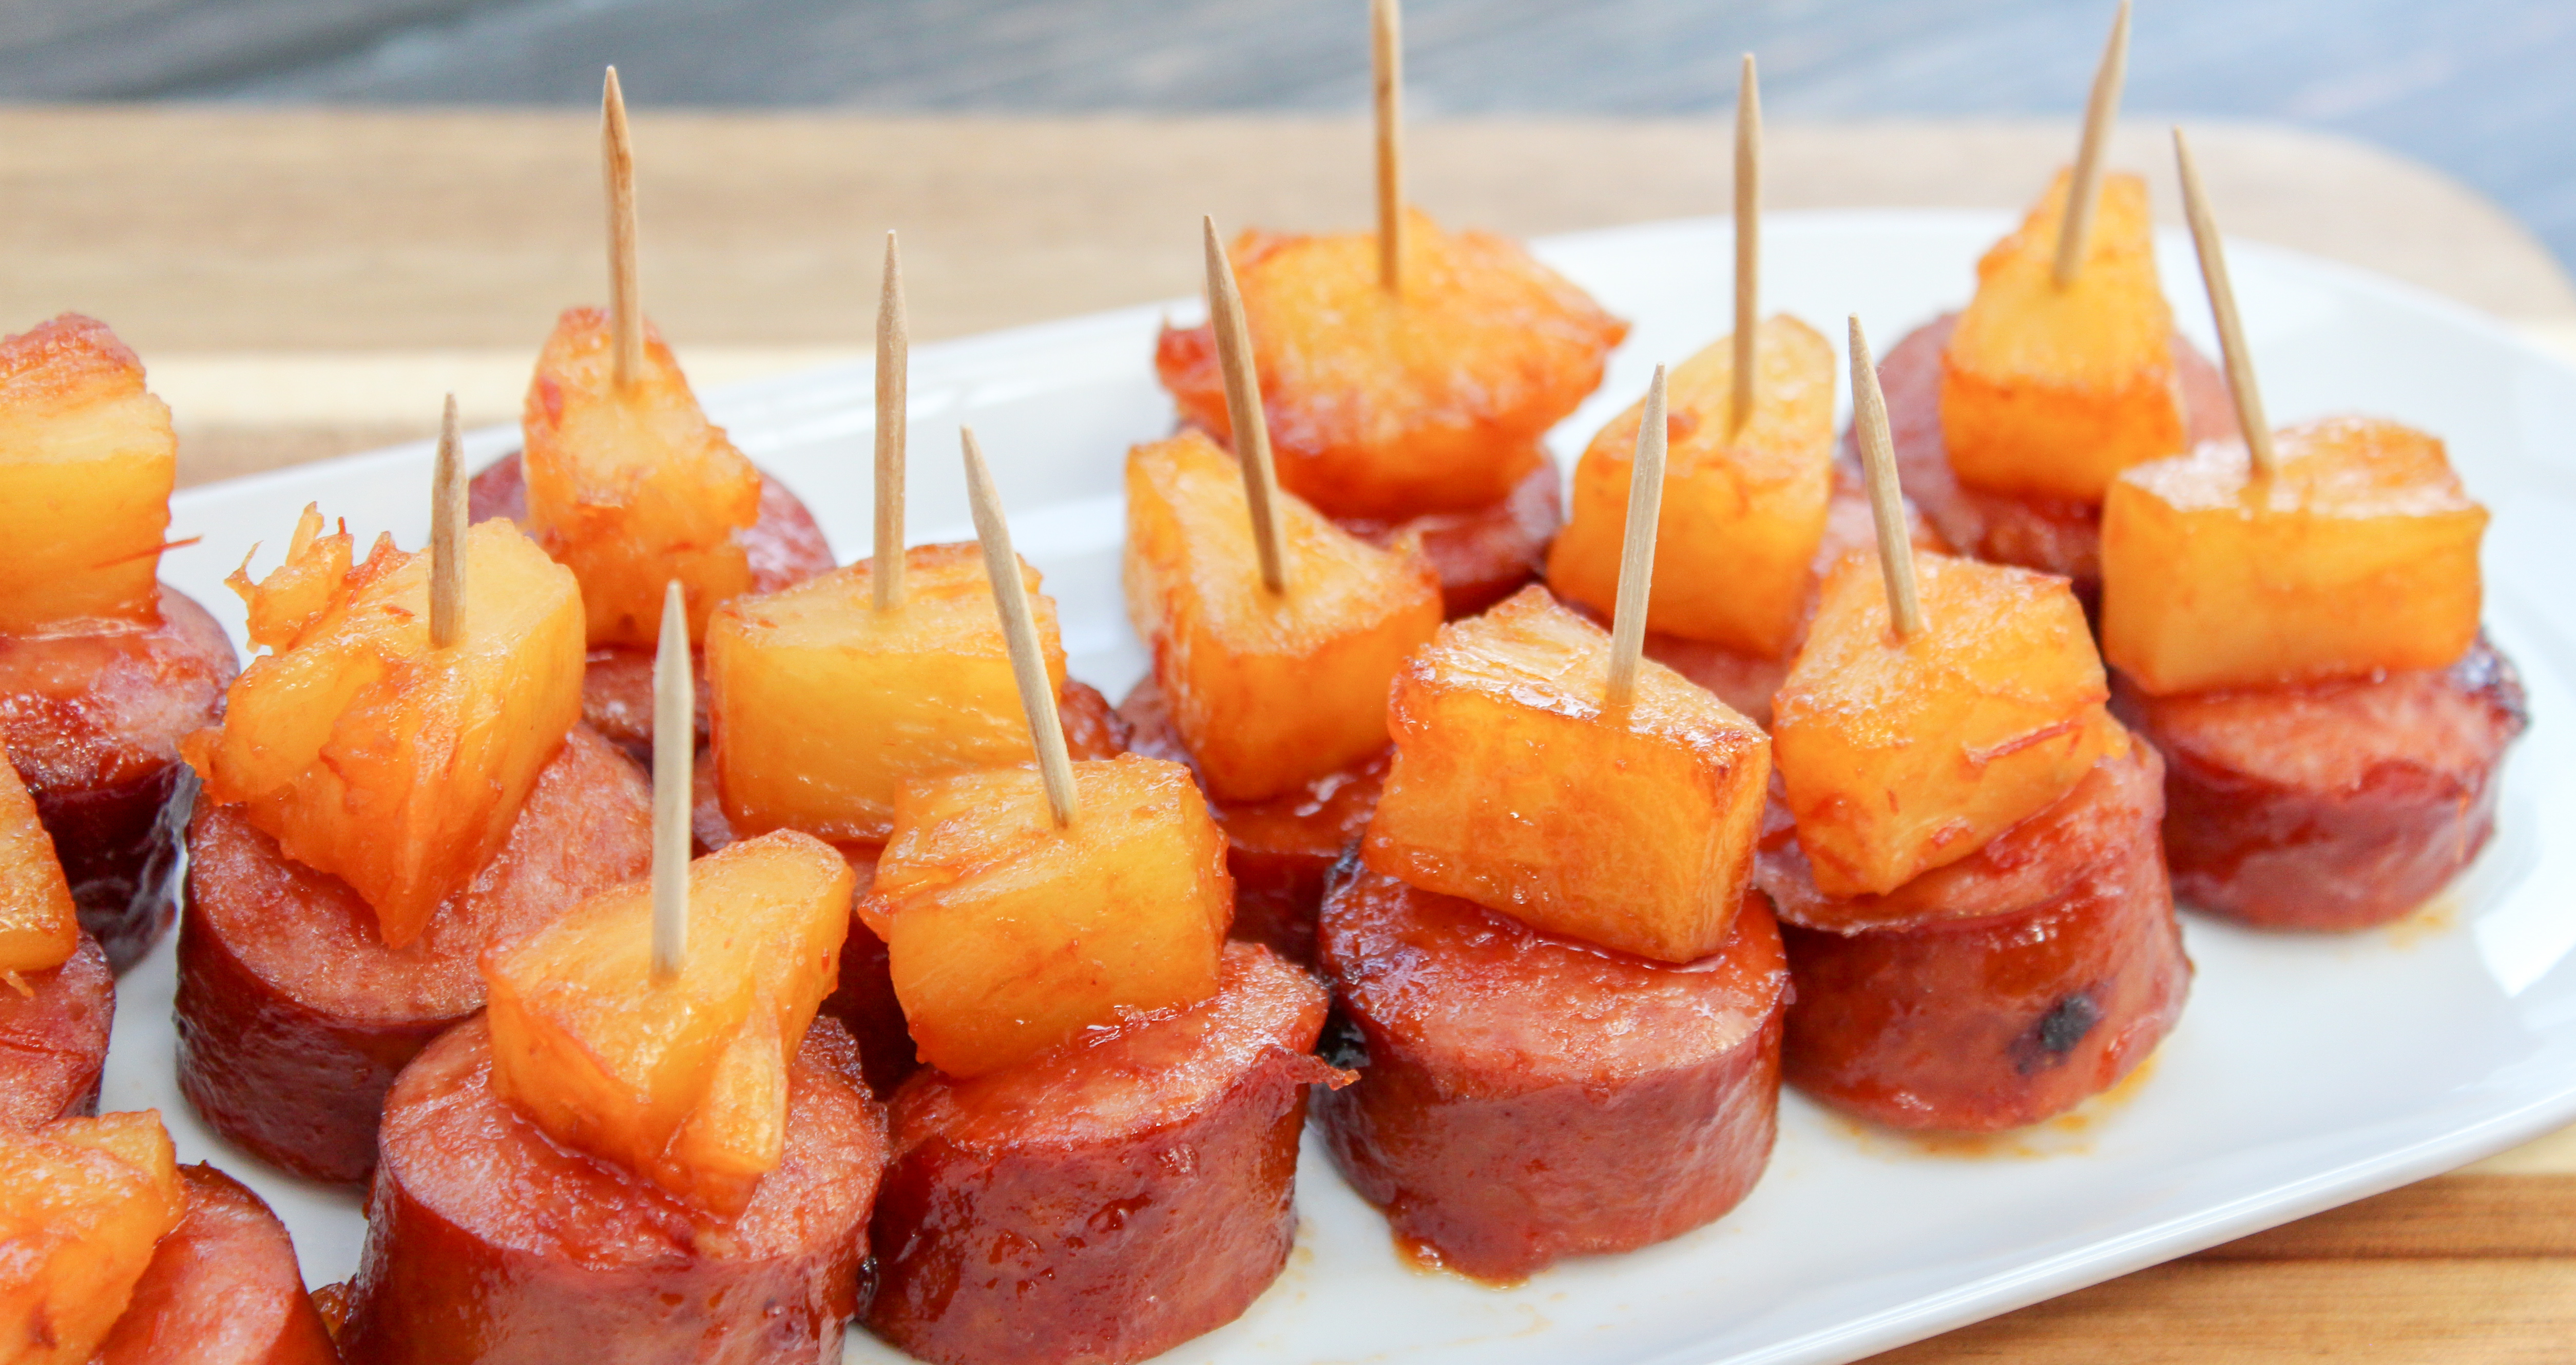 Sliced Smoked Sausage and Pineapple on a Toothpick